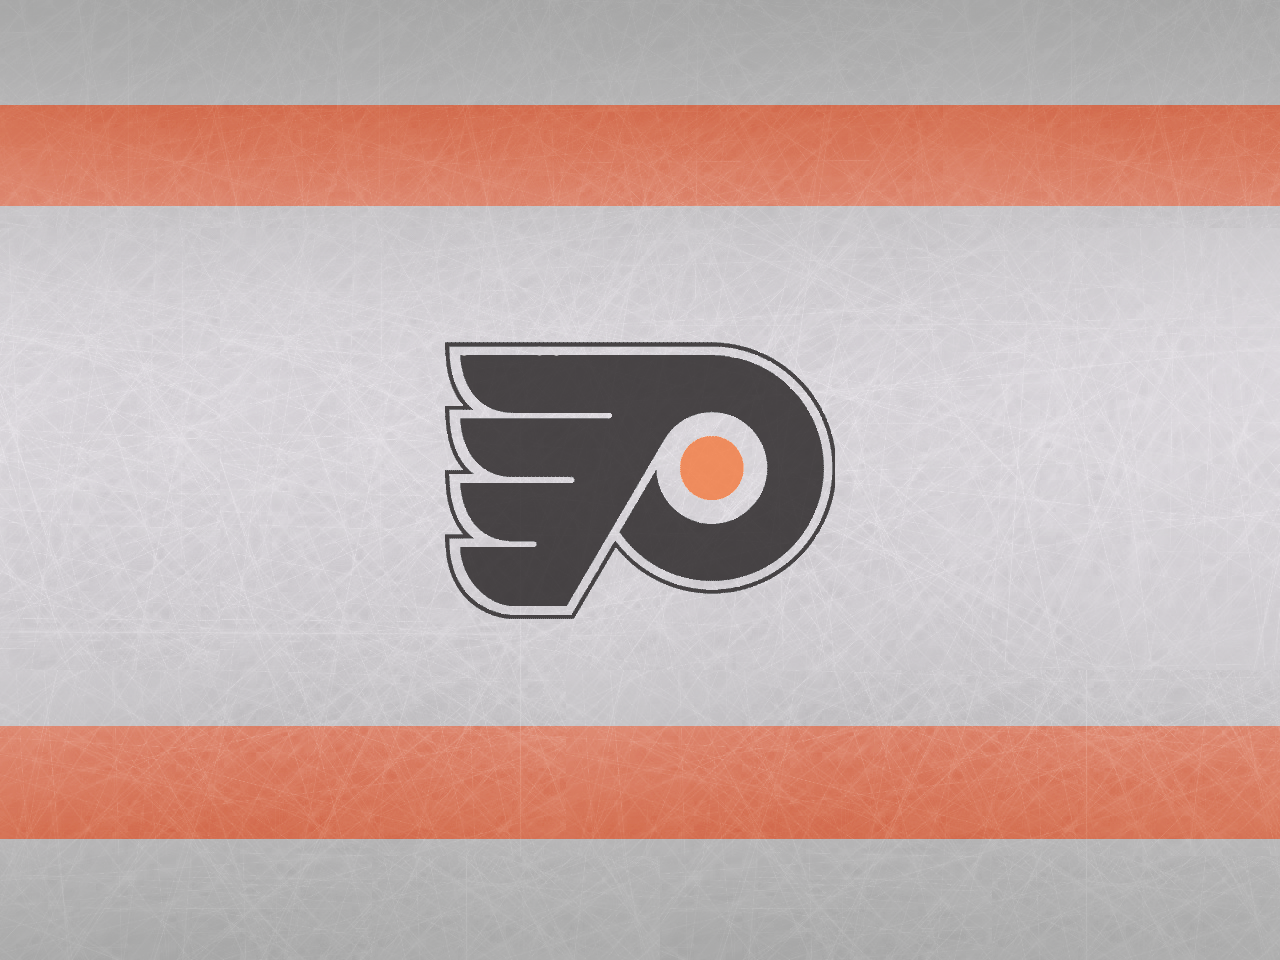 philadelphia flyers wallpaper5 by flyer48 d2zggxcpng 1280x960